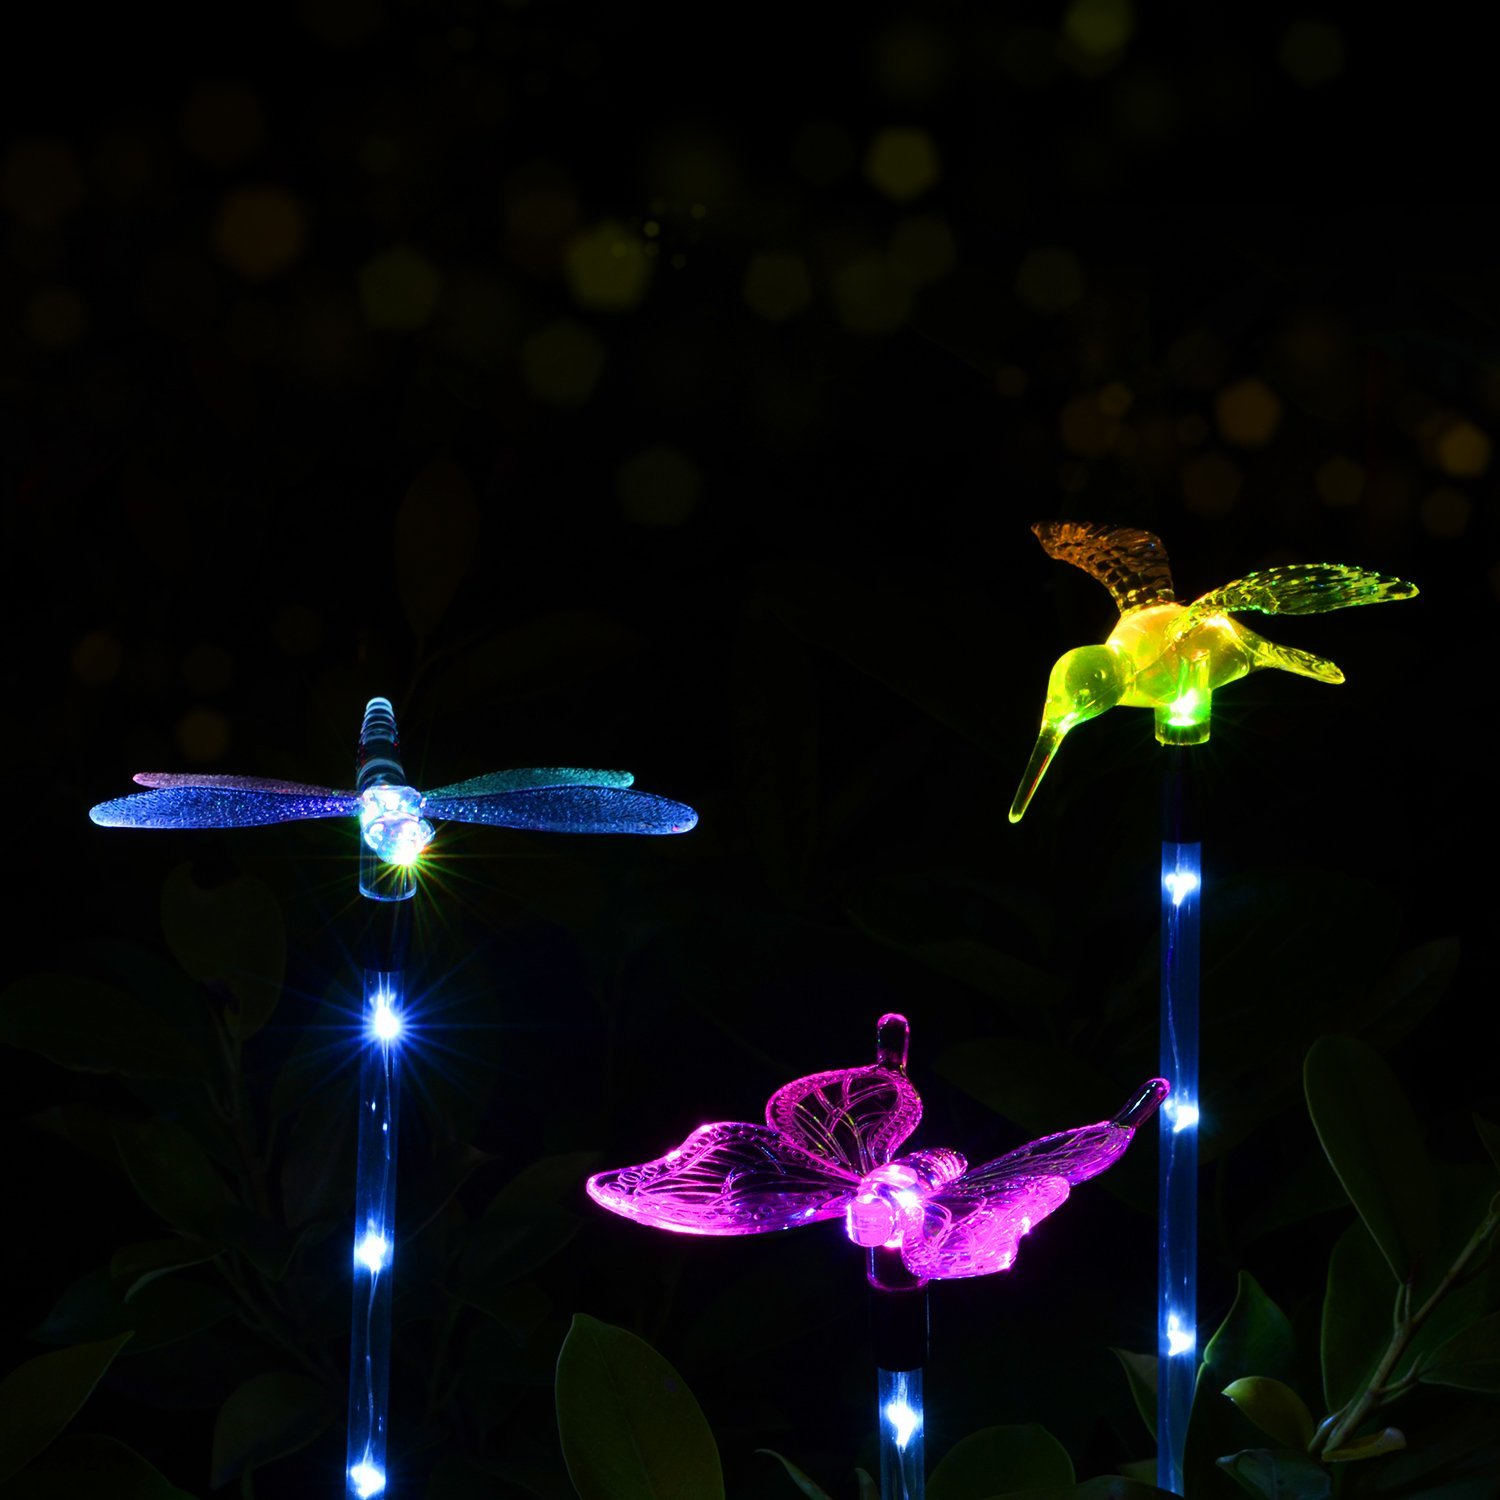 Bon Outdoor Solar Garden LED Light âu20acu201c Doingart Solar Powered Garden Stake Light  Chameleon Multi